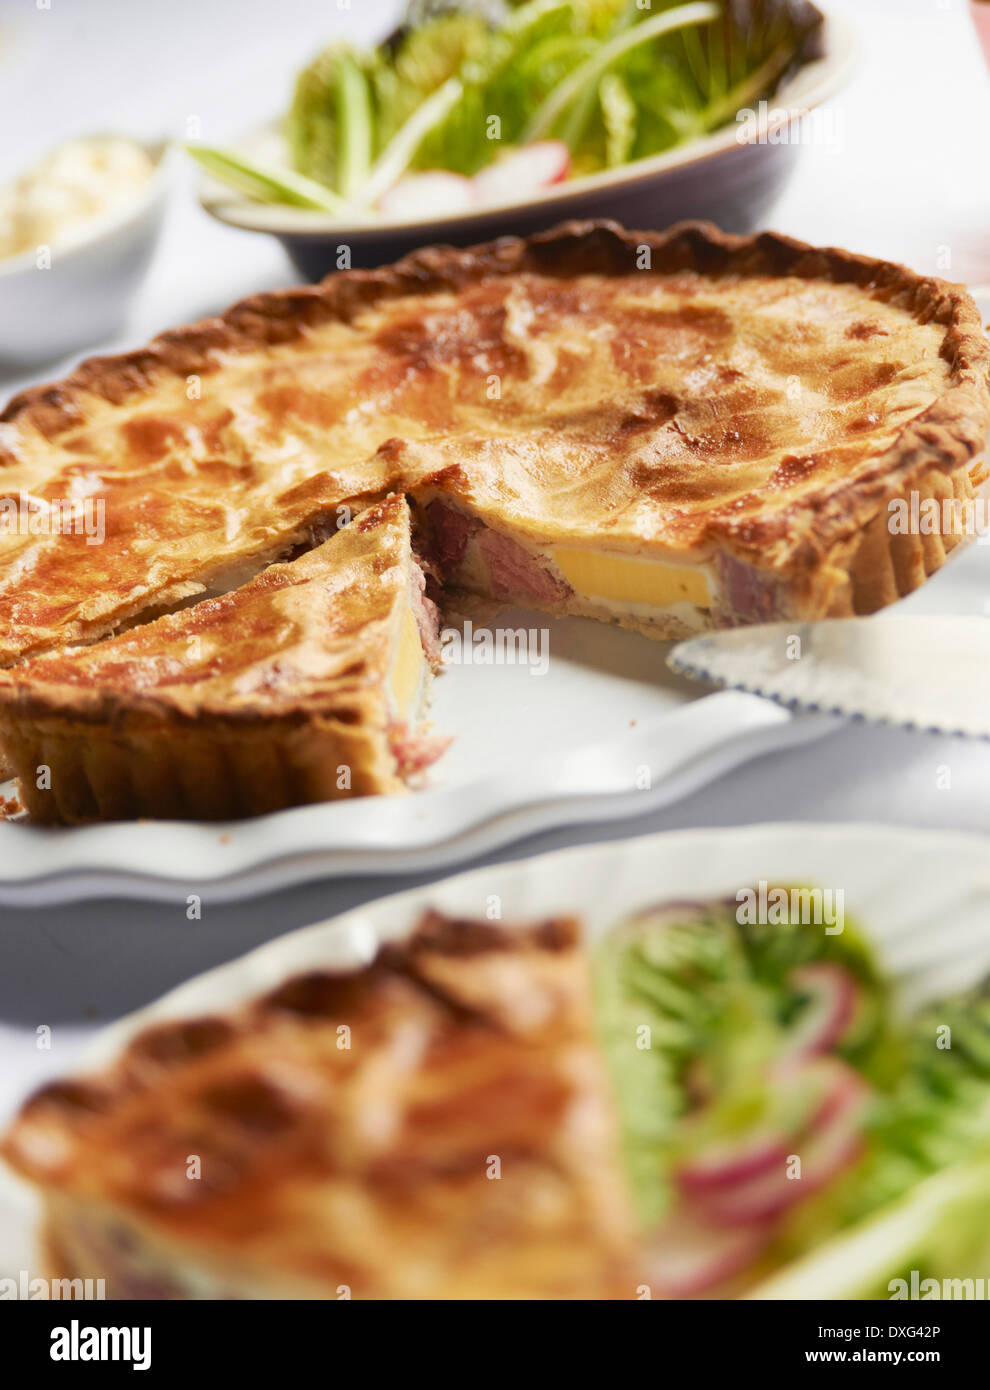 Homemade Ham And Egg Pie On Plate - Stock Image